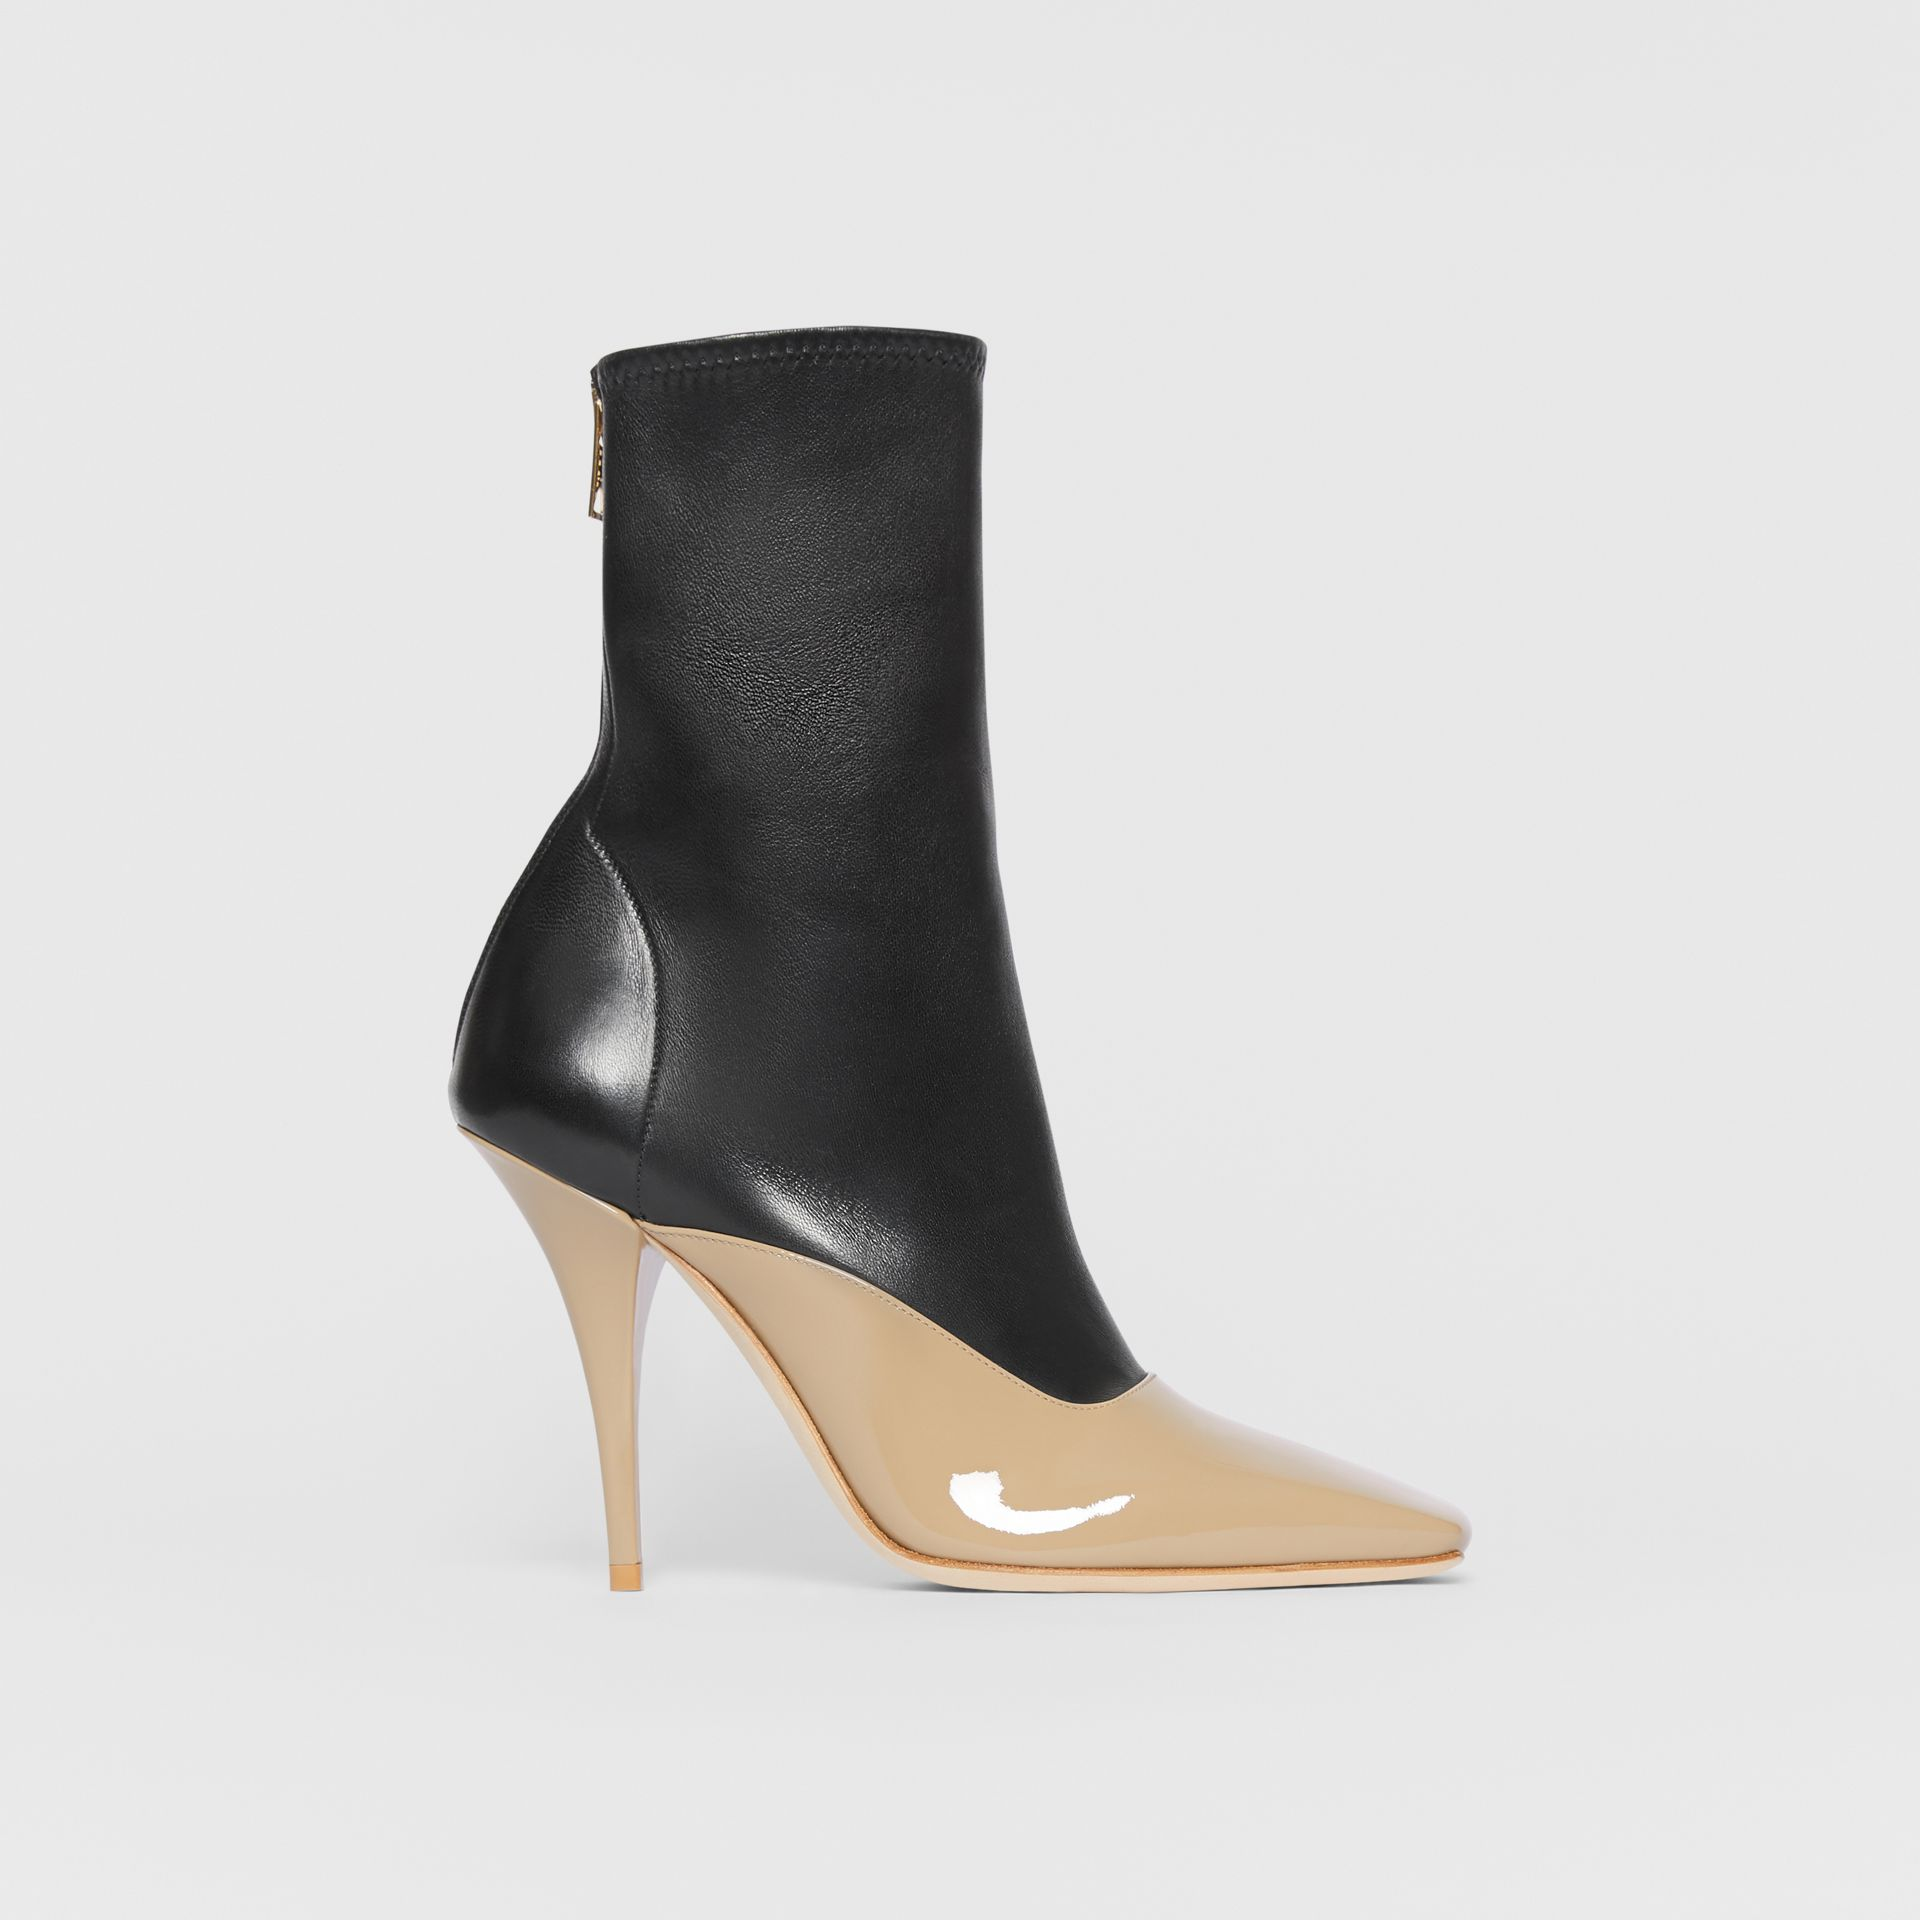 Two-tone Lambskin and Patent Leather Ankle Boots in Dark Honey/black - Women | Burberry Hong Kong S.A.R - gallery image 5